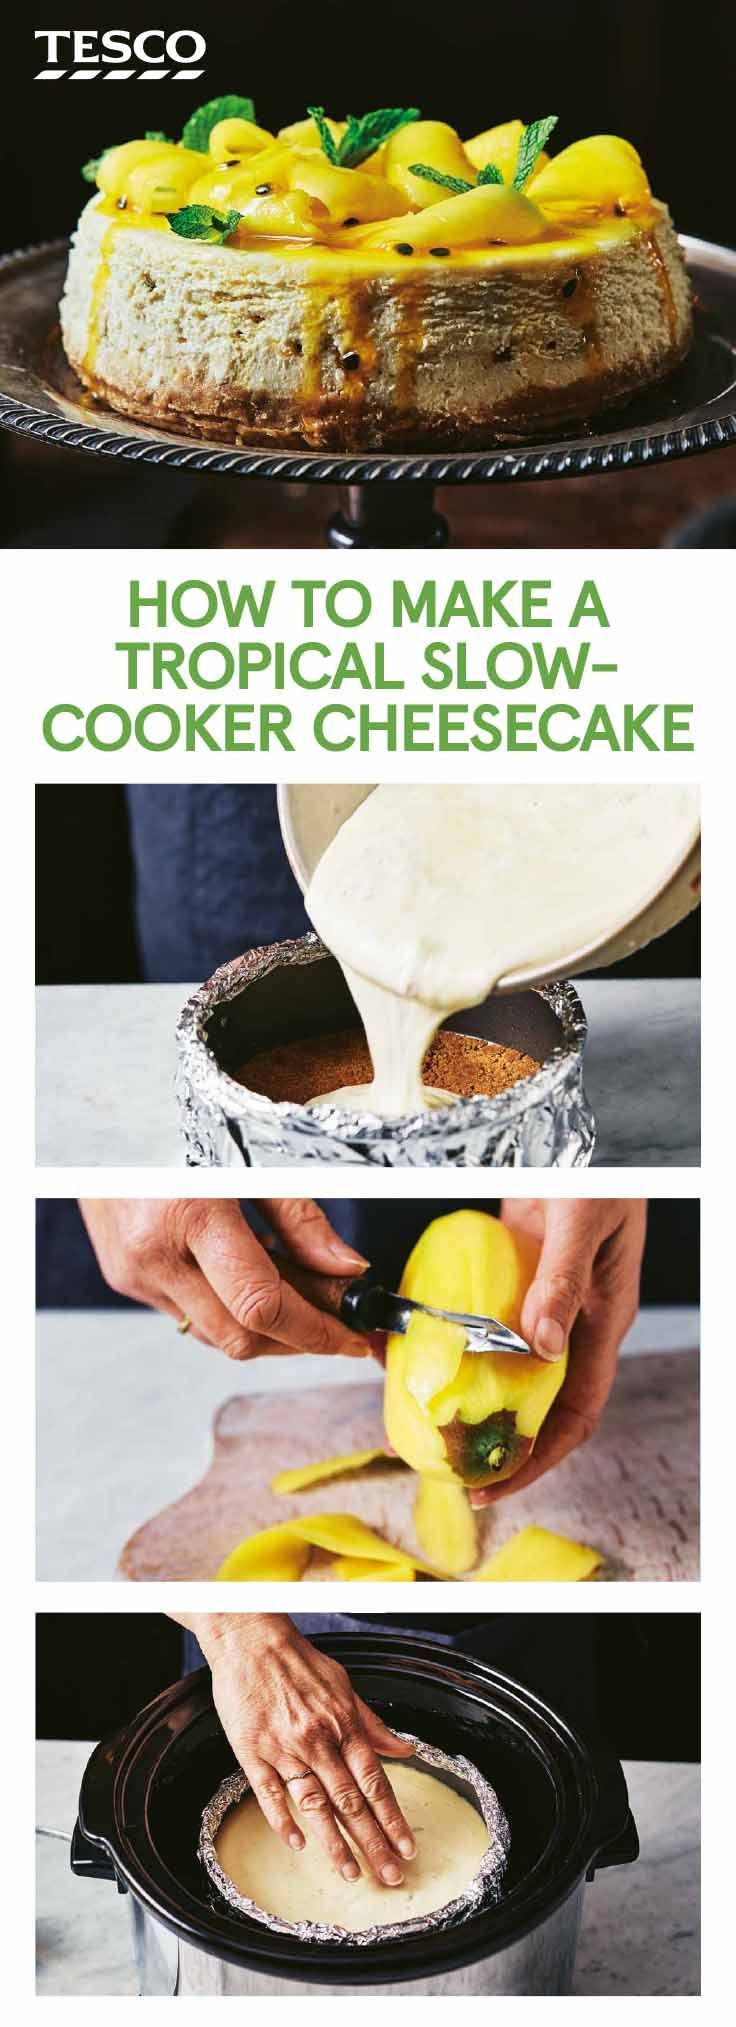 Who said you can't make a dessert in a slow cooker? Our easy cheesecake recipe is mouthwateringly tangy, made with lime and passion fruit, and topped with mango ribbons and fragrant mint.